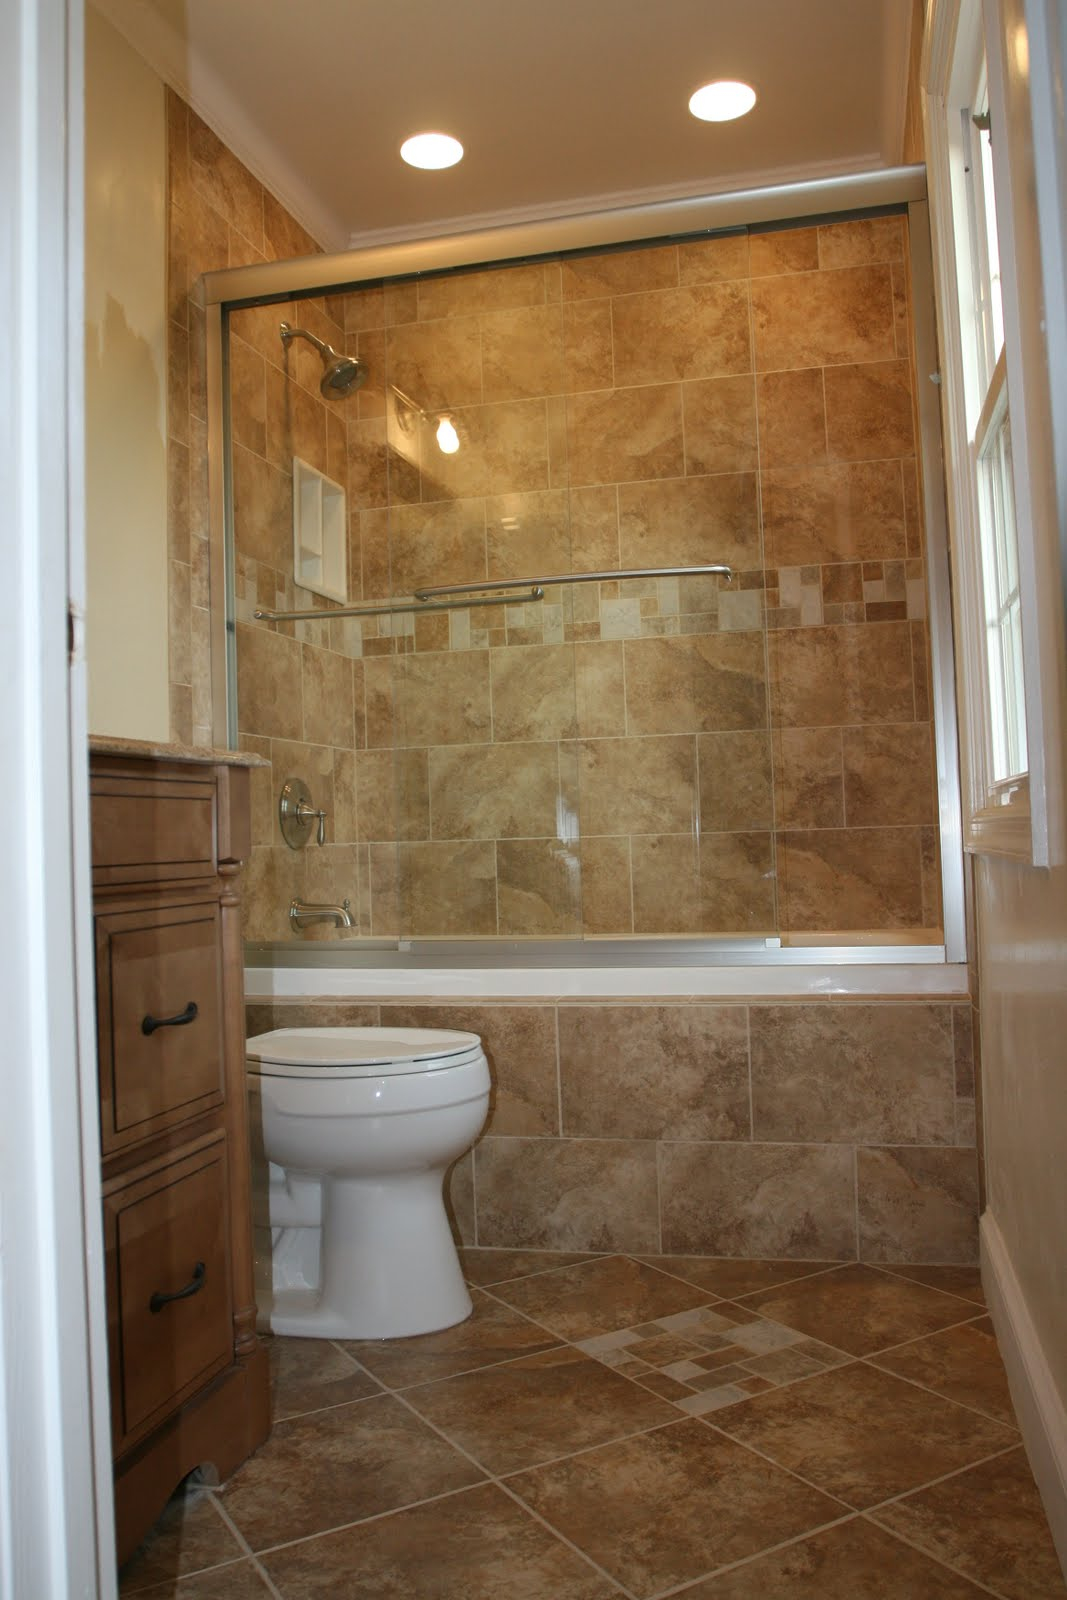 Bathroom Remodeling Design Ideas Tile Shower Niches Bathroom Remodeling Trends Design Ideas